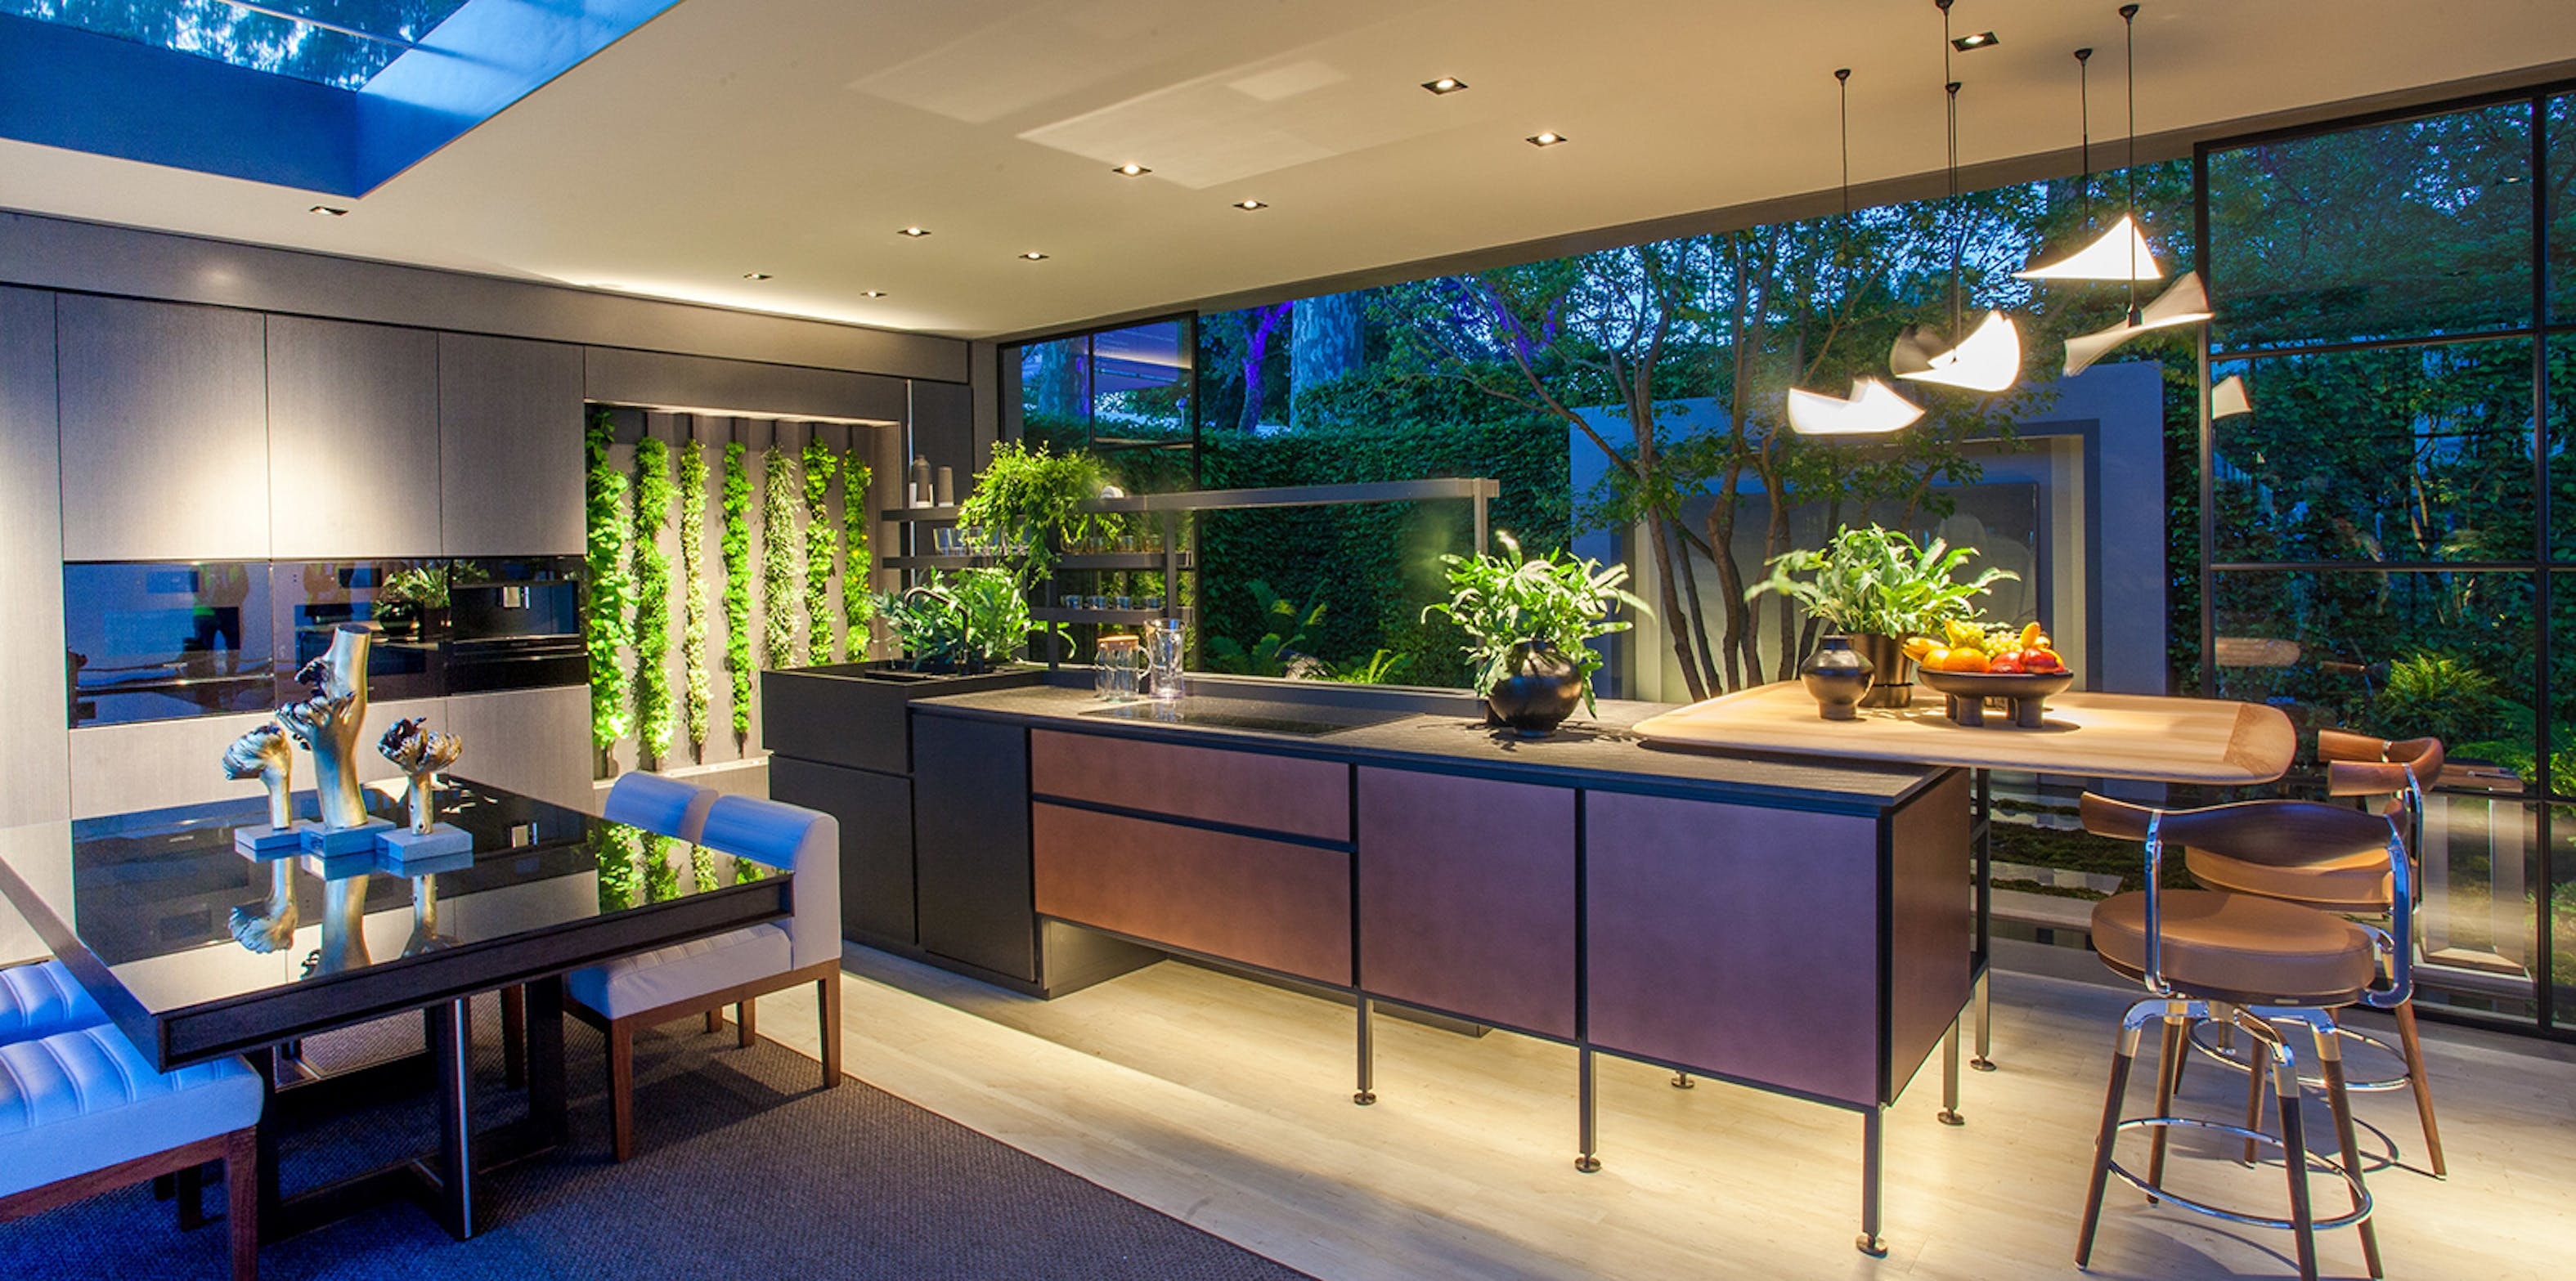 light and airey kitchen lighting design